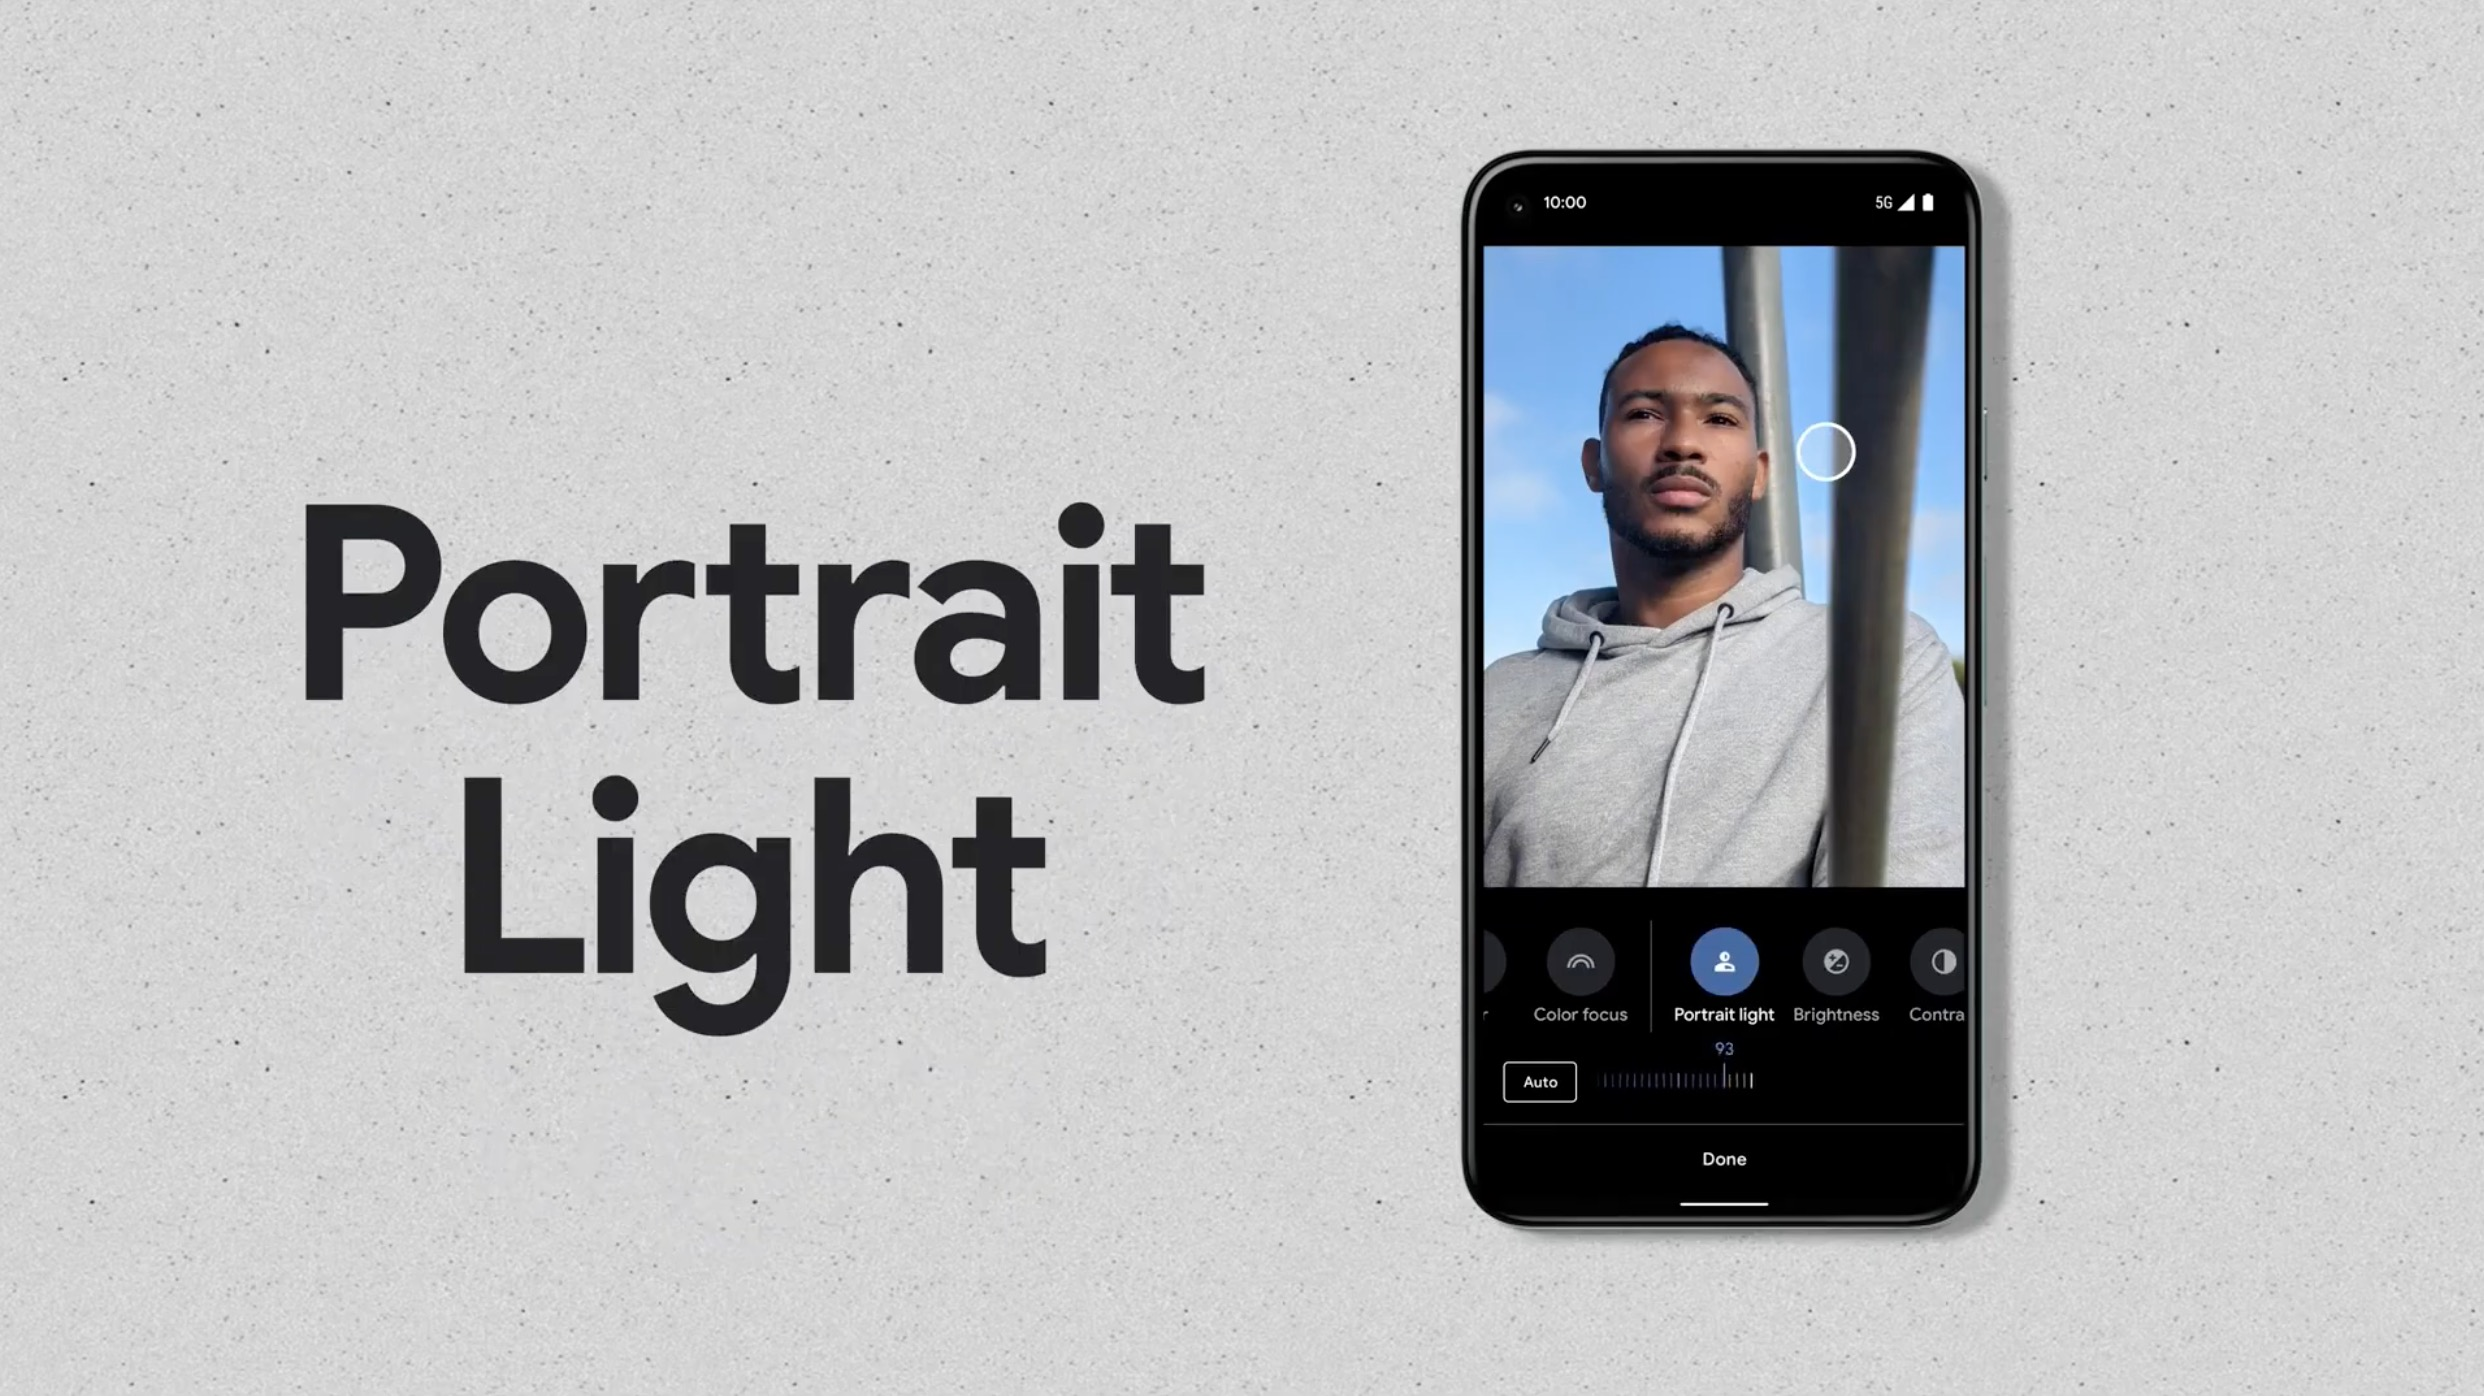 Pixel 5 and 4a 5g get the same, improved cameras with rear ultrawide lens, Night Sight portraits and more